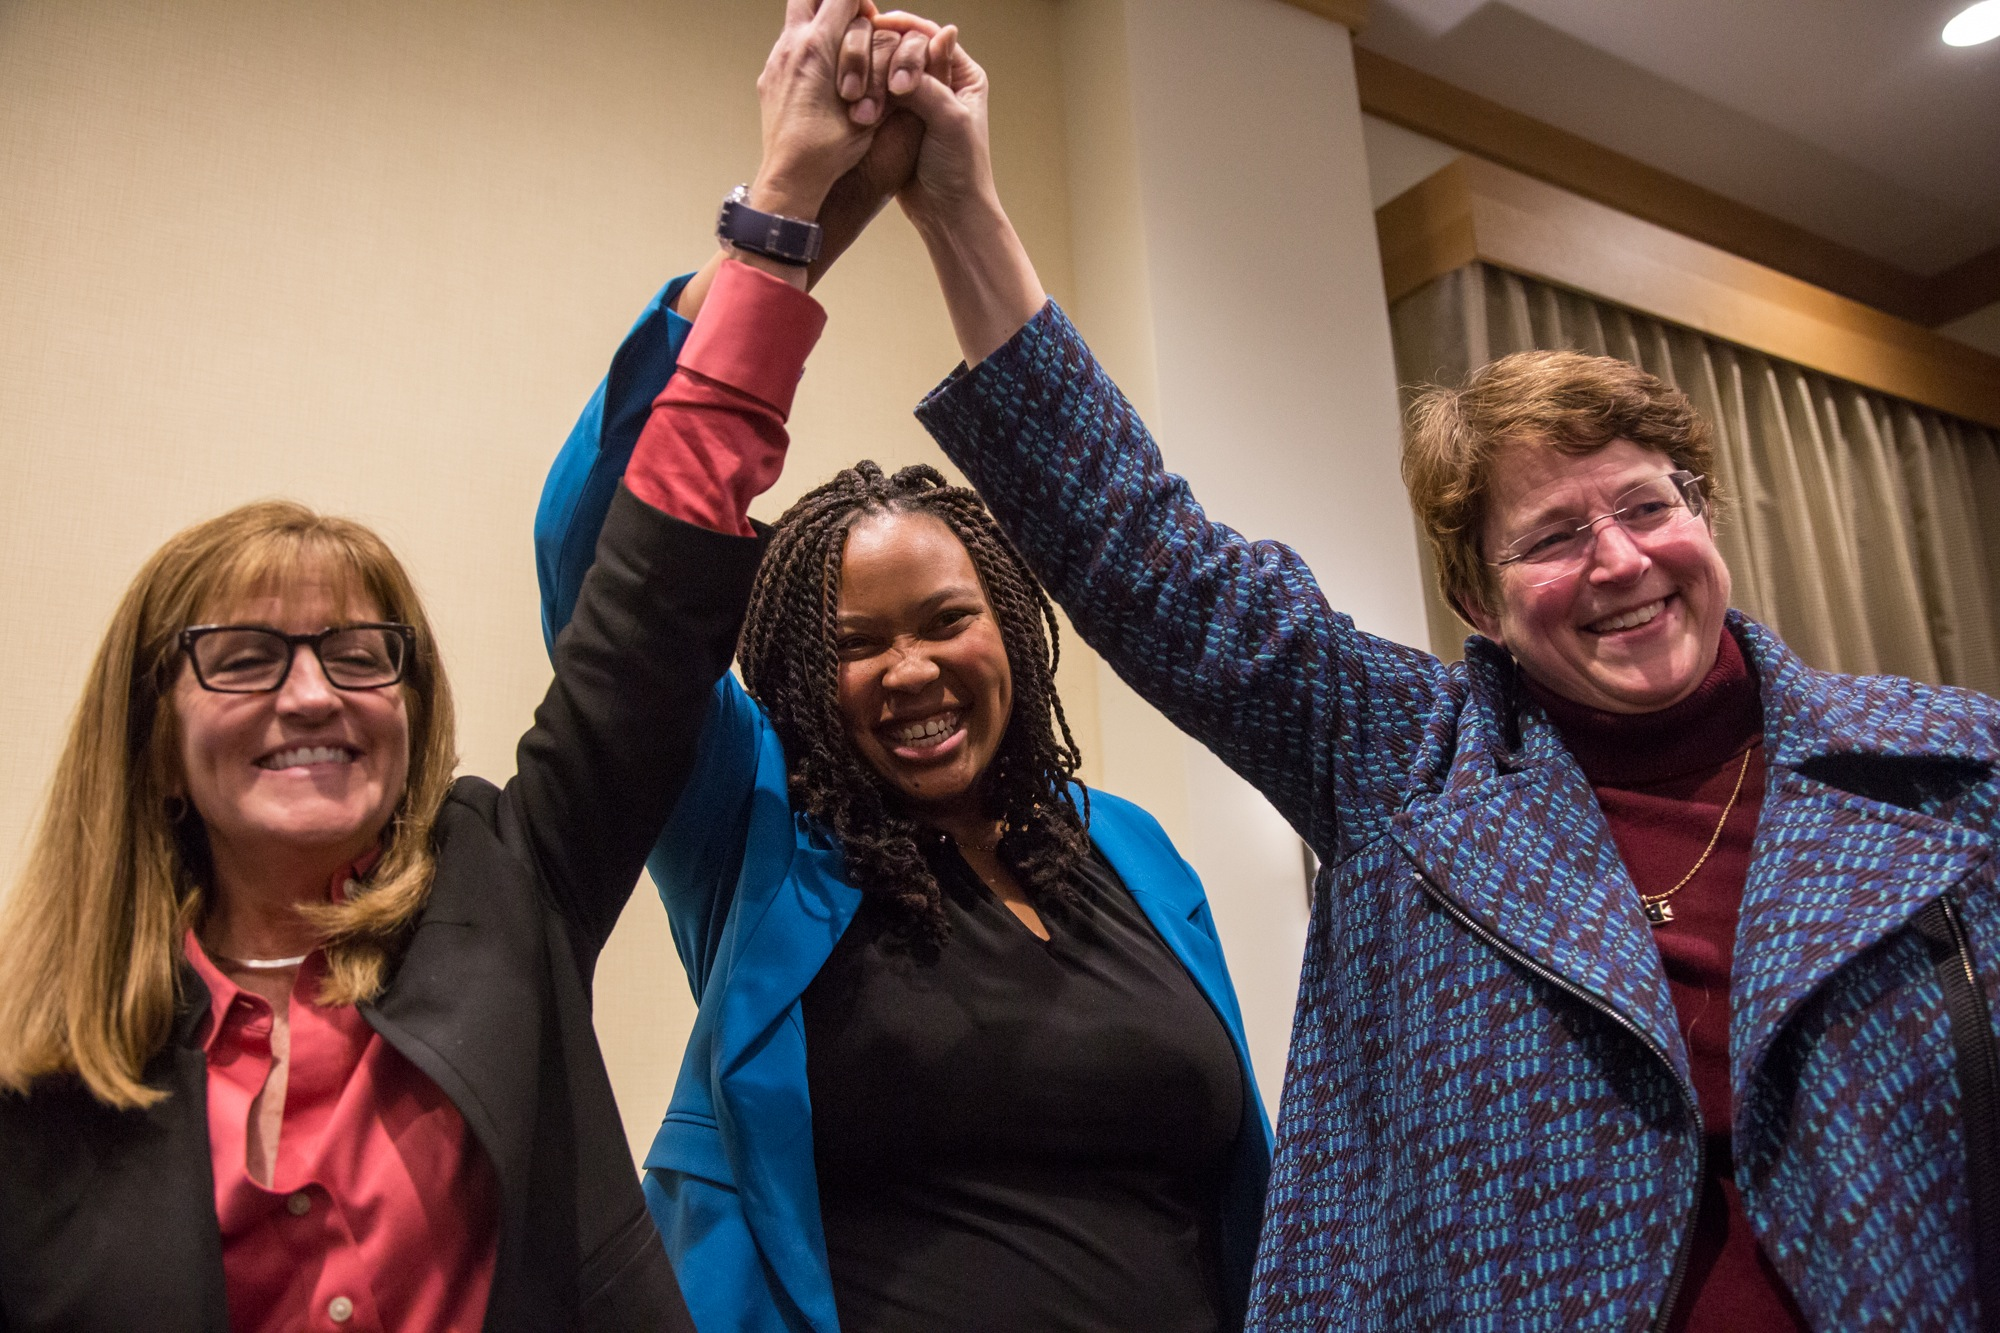 In historic win, Democrats take Delaware County Council in a 'clean sweep'